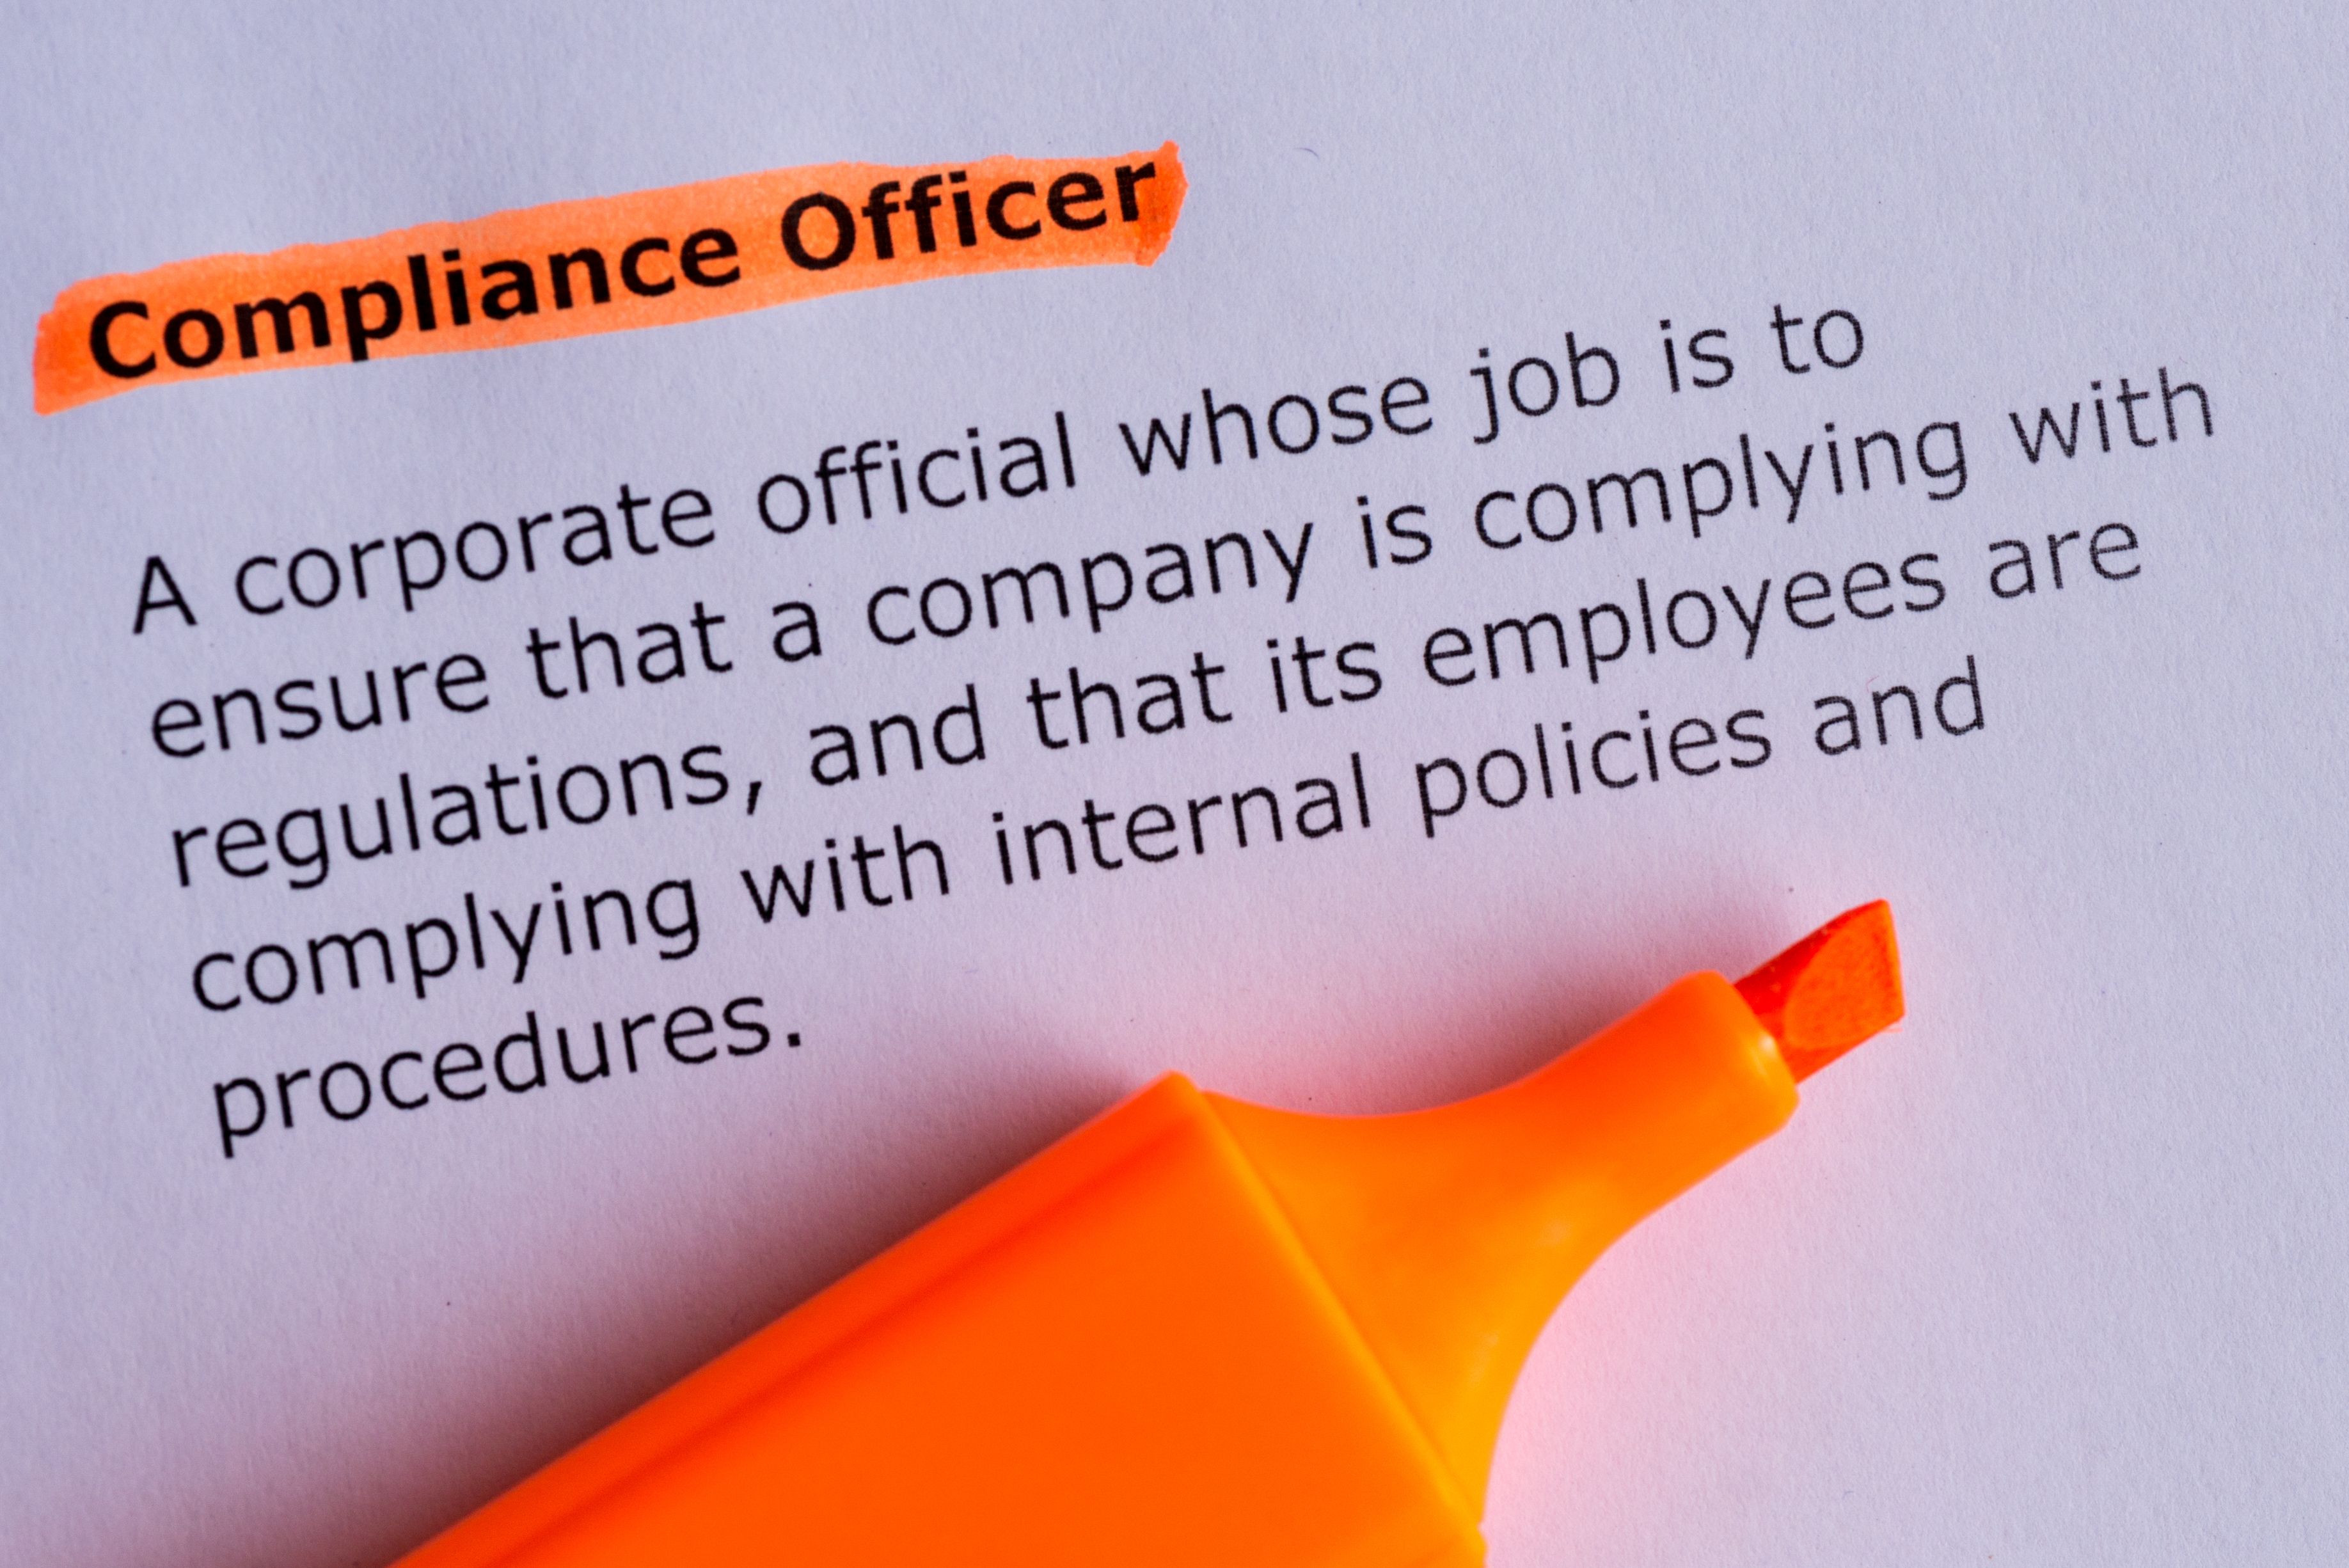 Role of the Compliance Officer